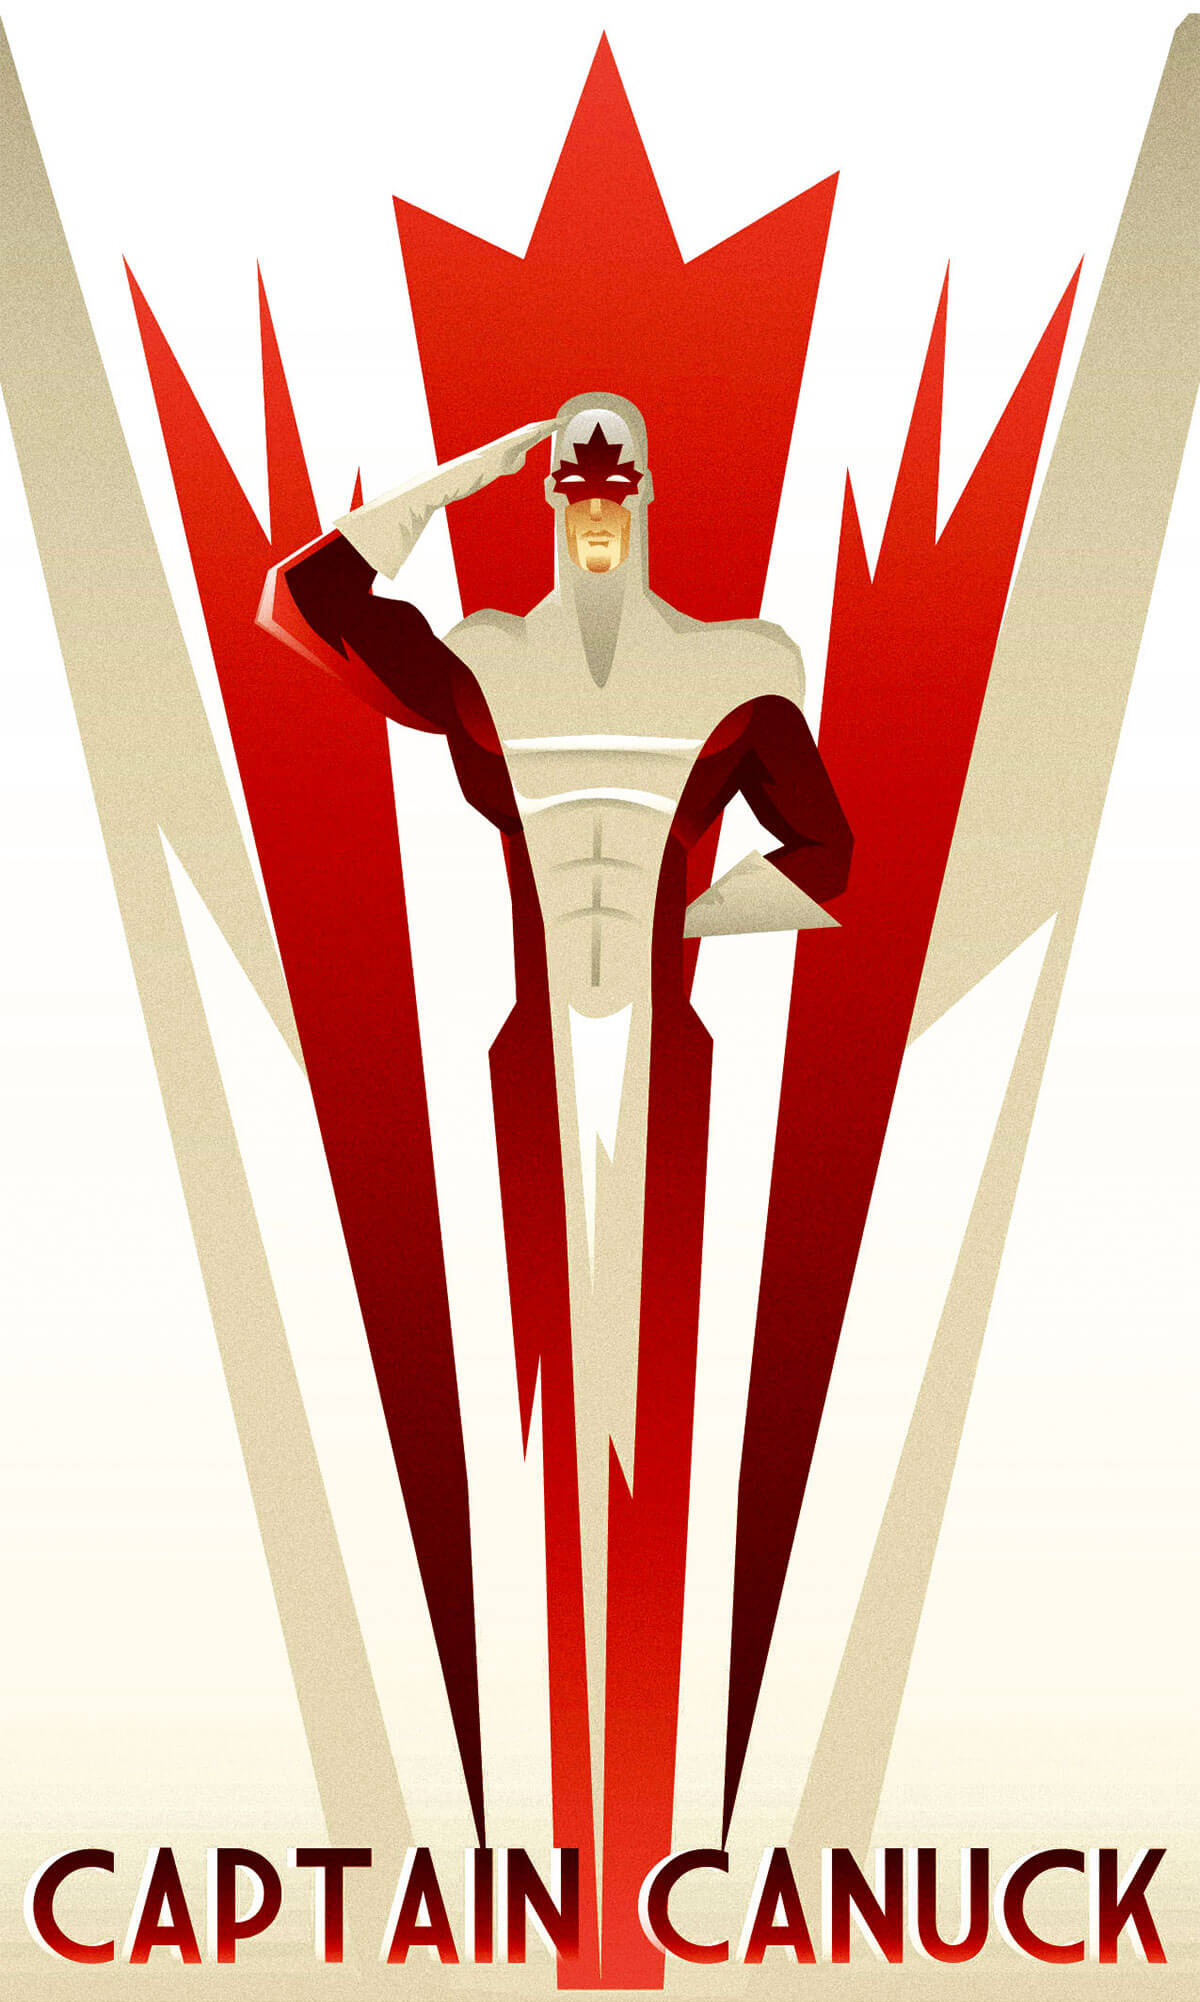 Captain Canuck by Rodolfo Reyes